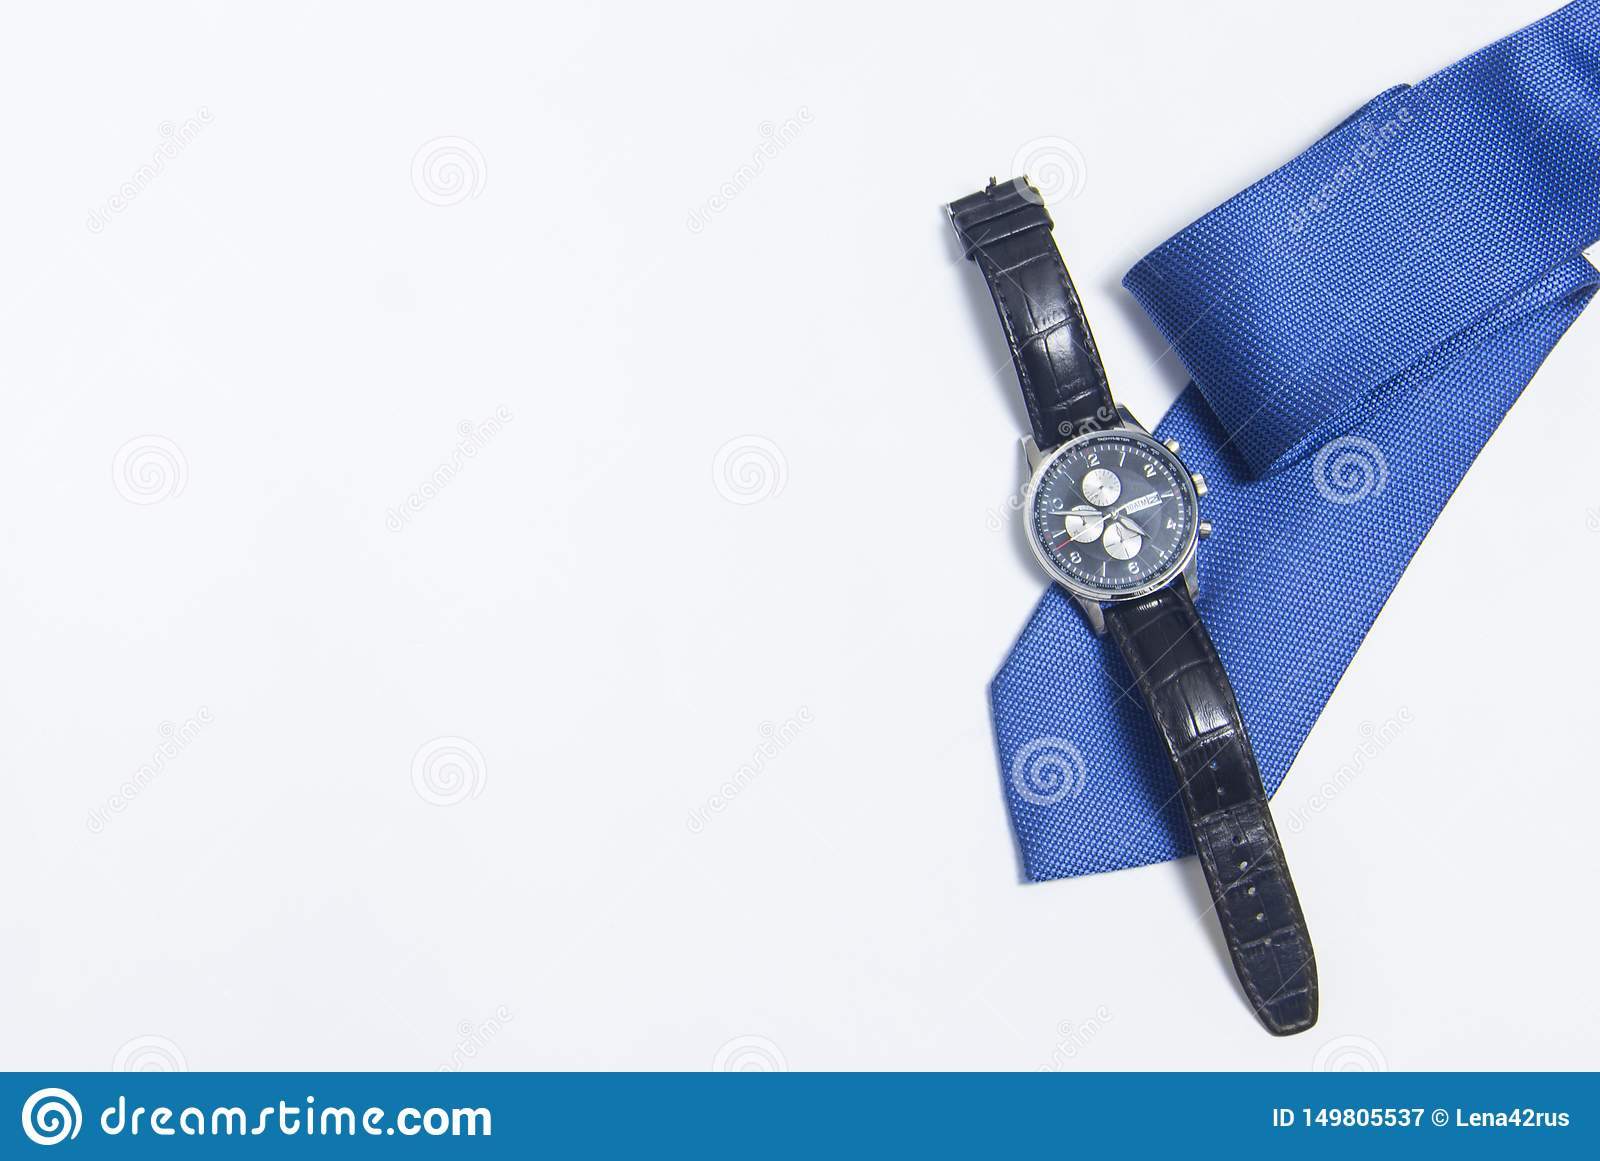 Men`s watch and tie on white background. Men`s accessories on white background